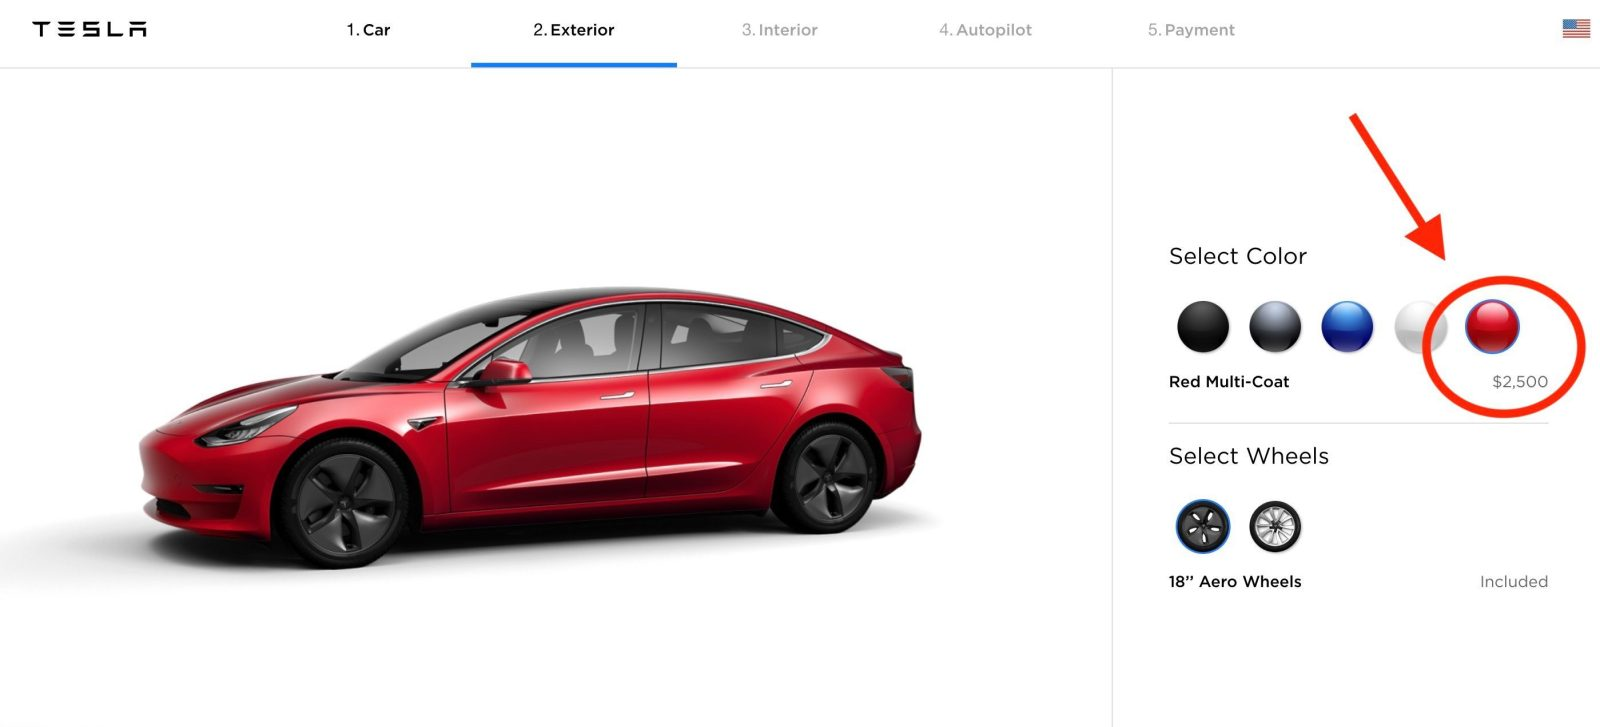 Tesla increases price of Red Multi-Coat paint for all cars as it